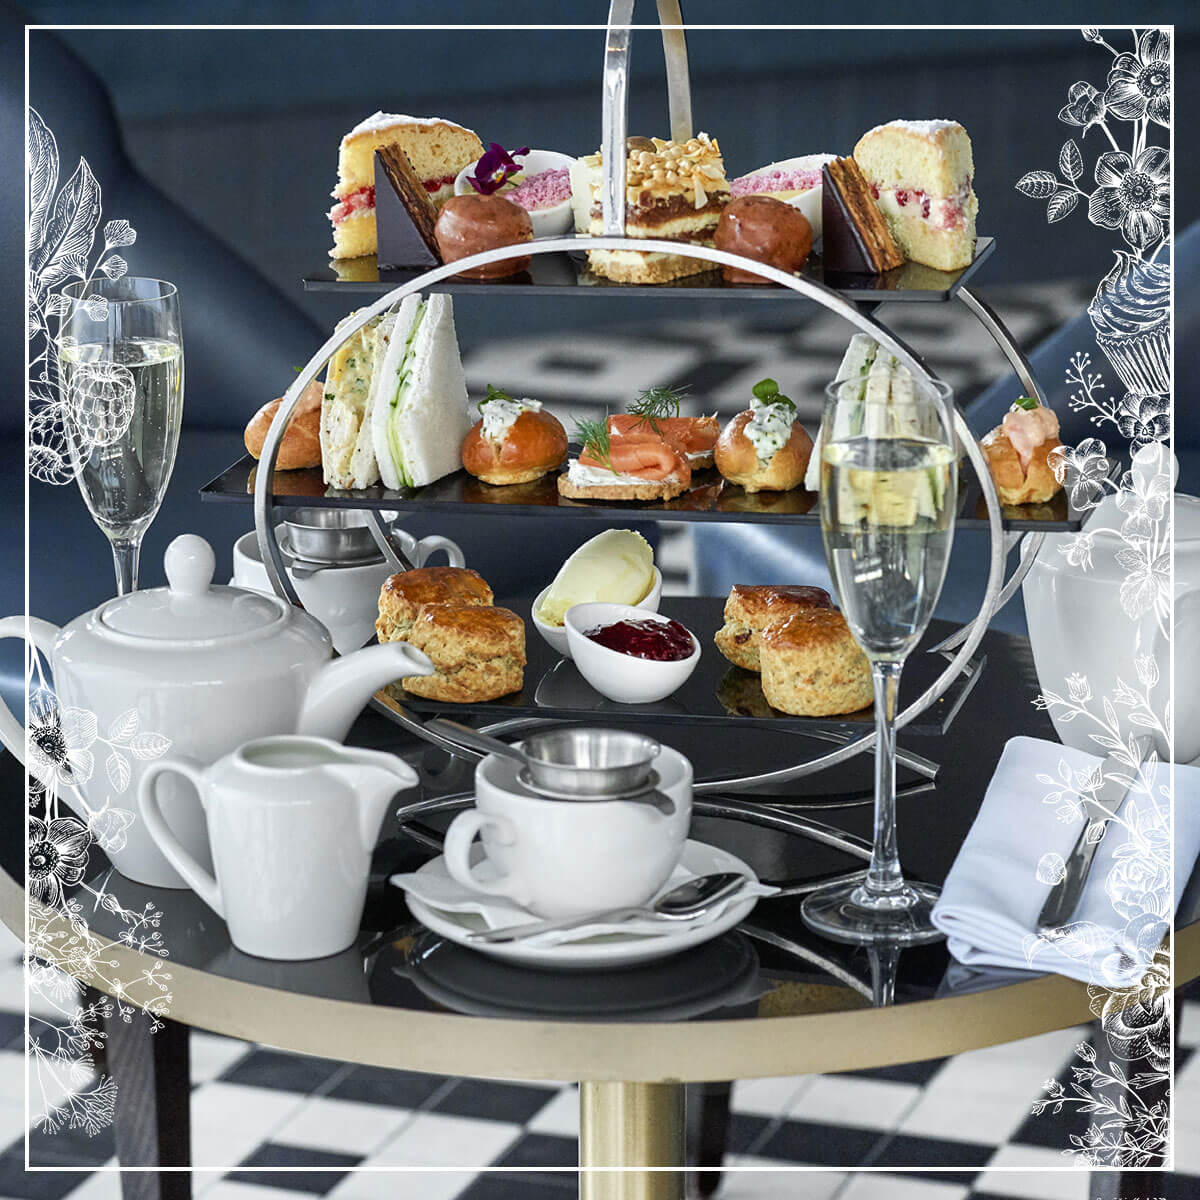 45th-afternoontea.jpg